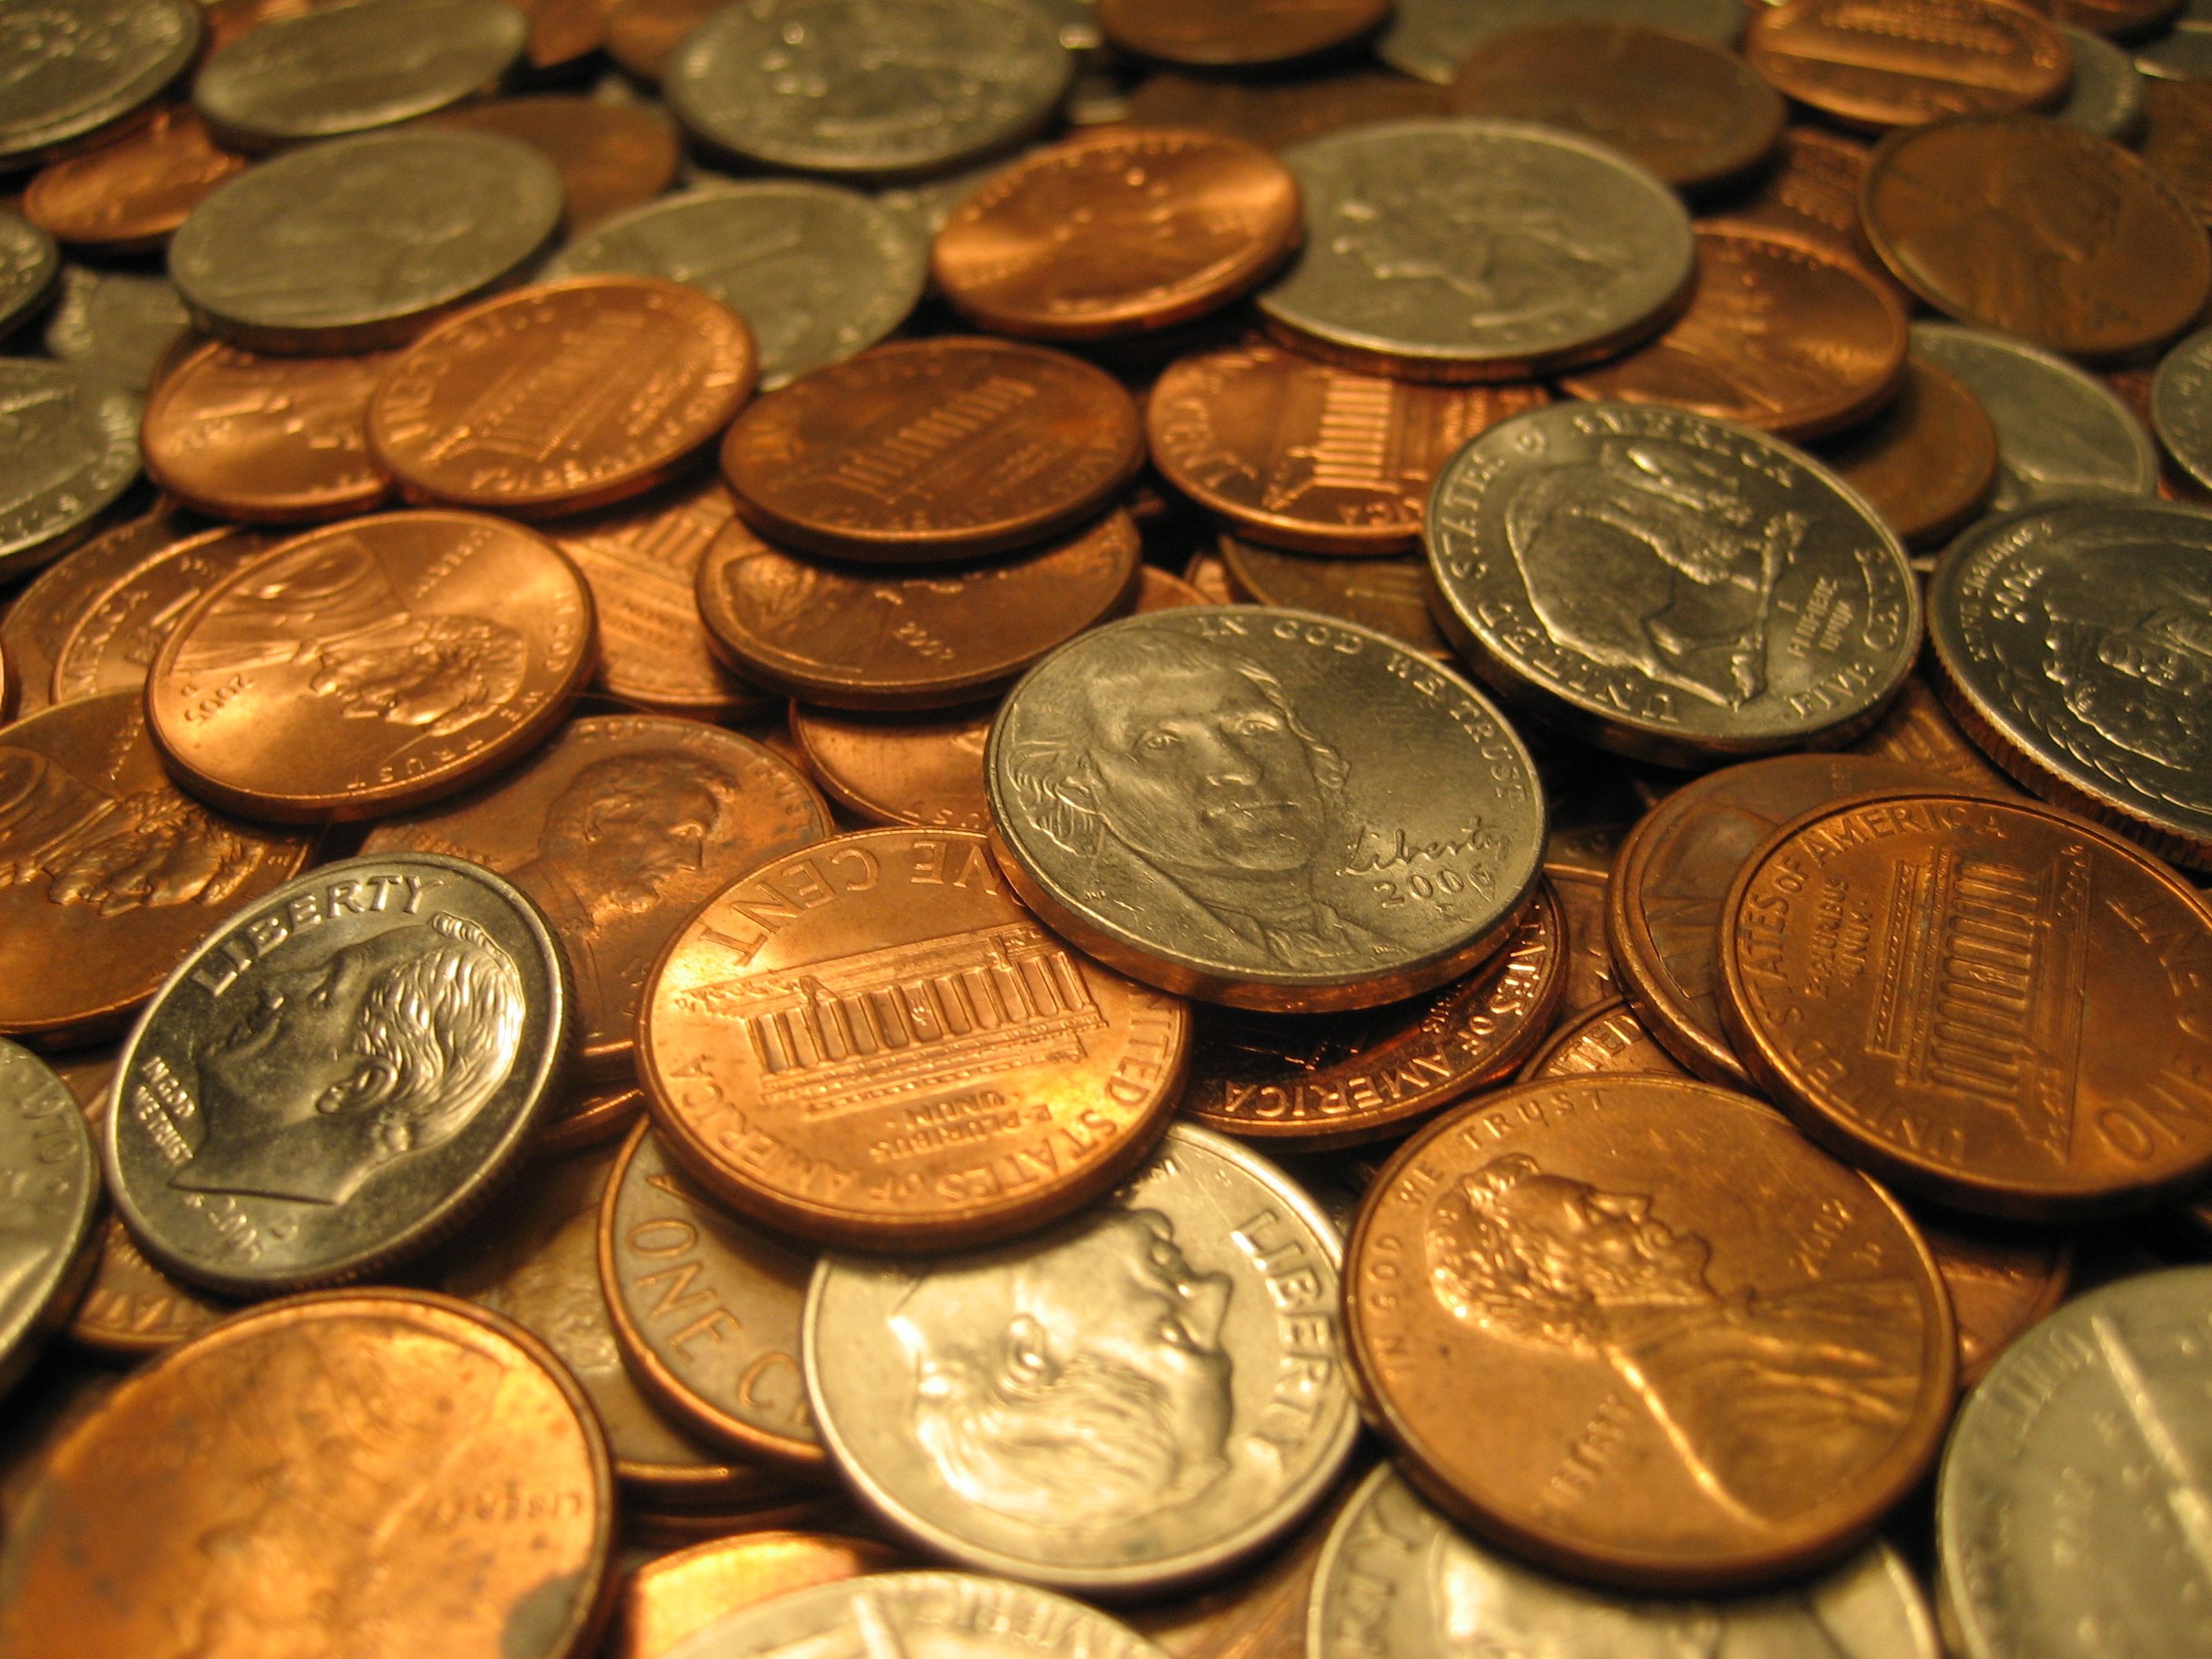 Pennies, nickles, dimes, quarters in pile